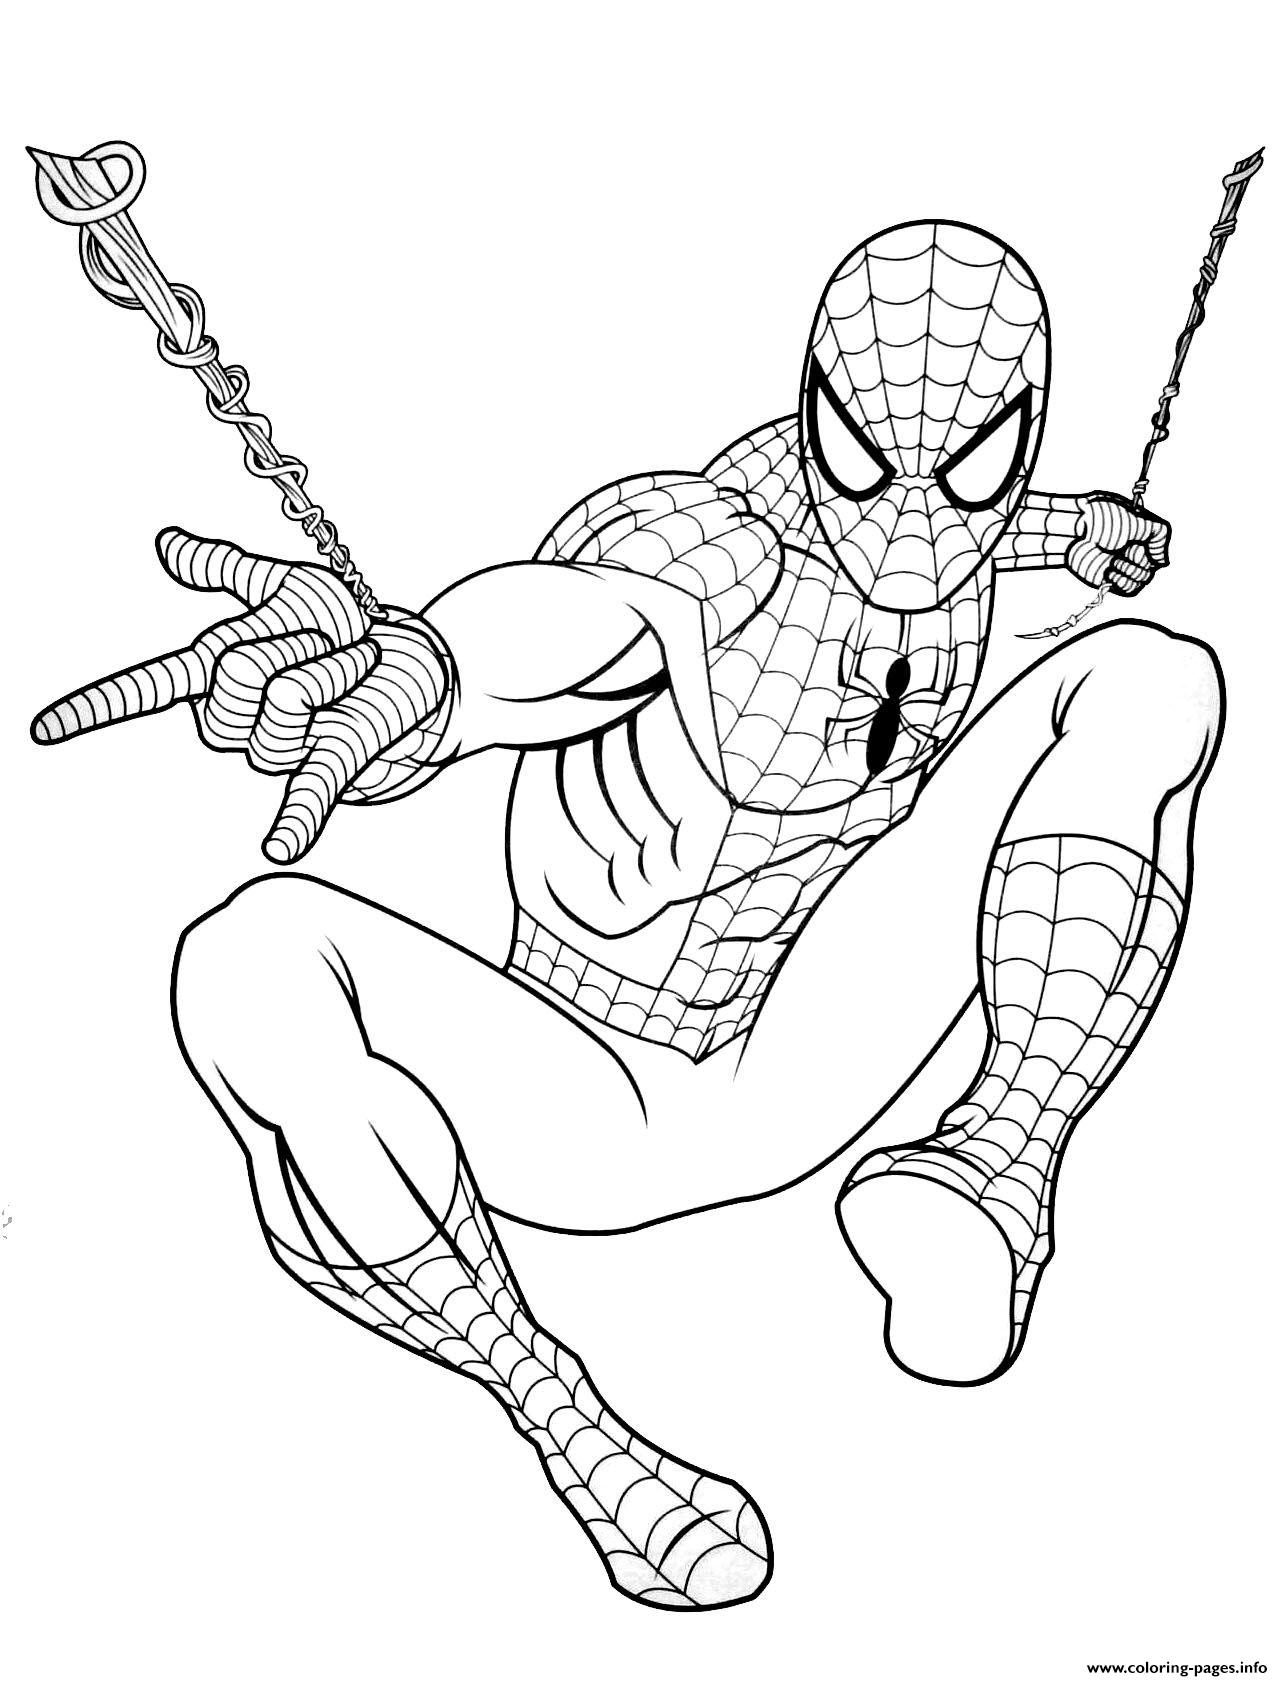 coloring kids spider man far from home coloring pages 47 free spider man far from home coloring page printable kids coloring from home coloring spider far pages man